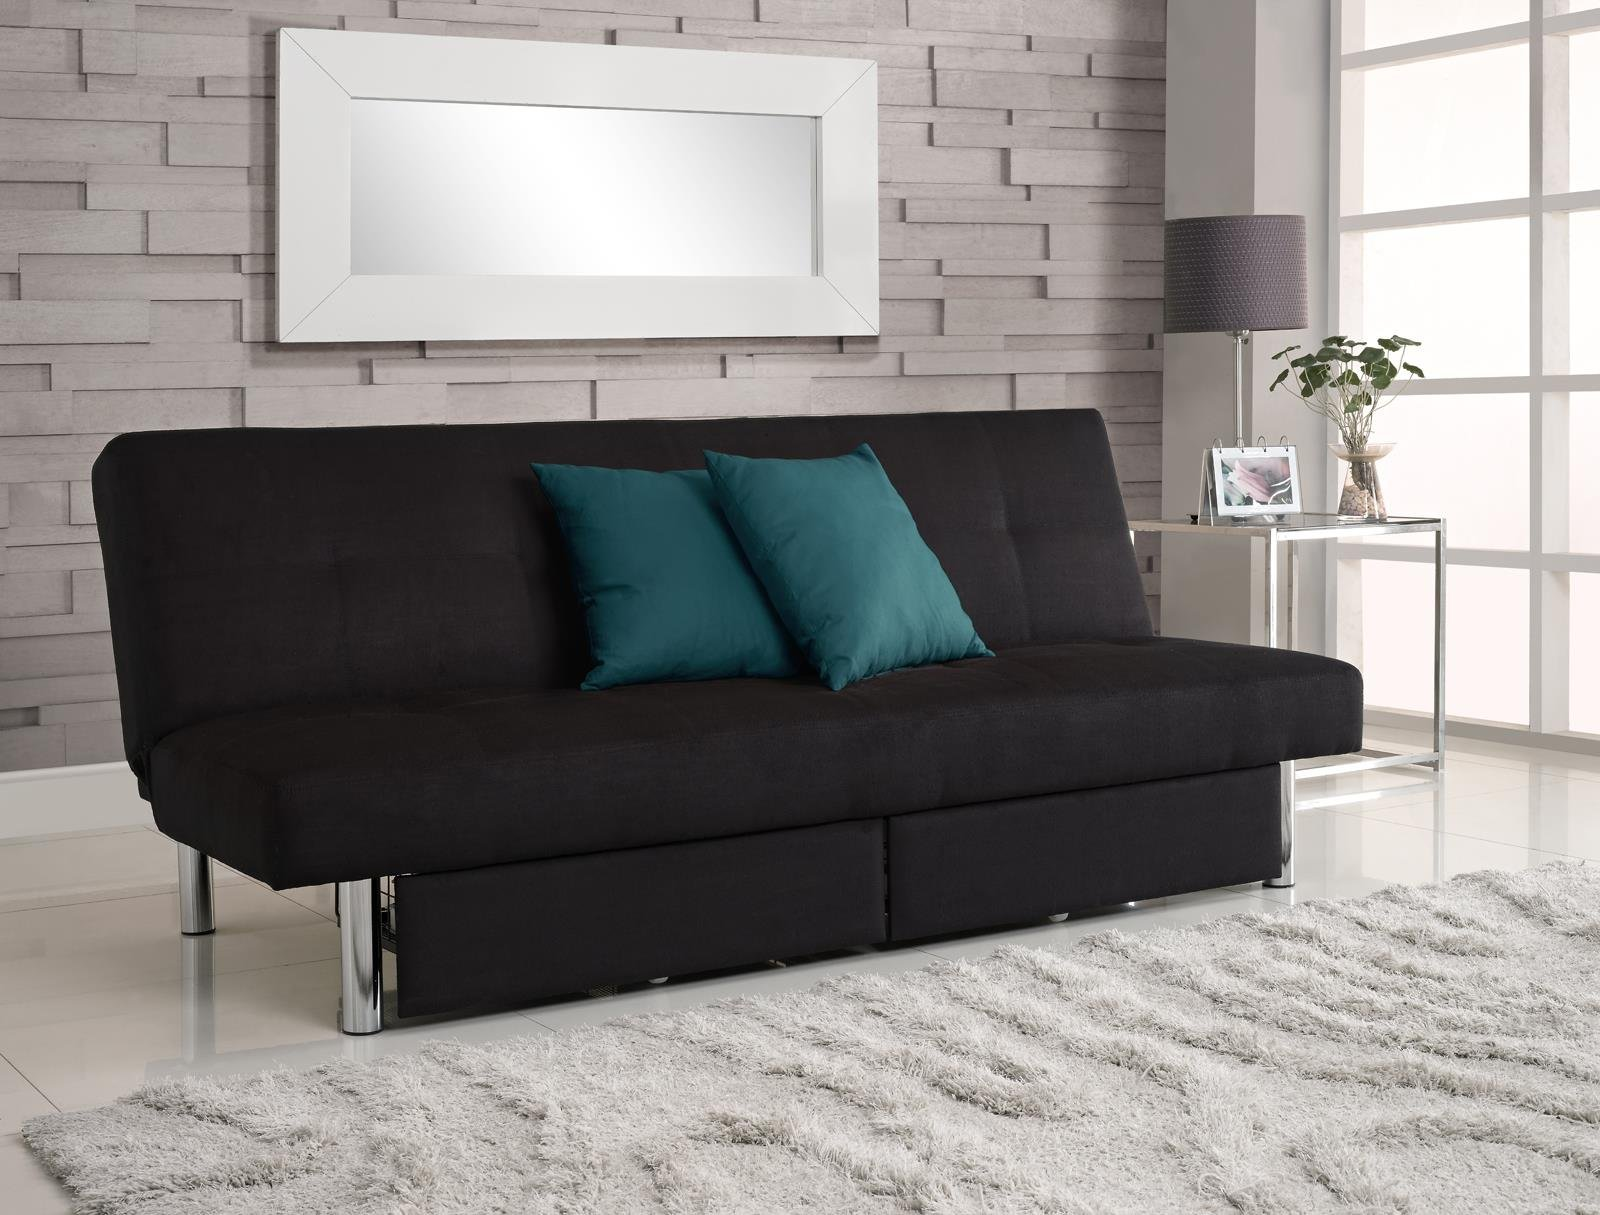 Get Quotations Dhp Sola Convertible Sofa Futon With E Saving Storage Compartments Chrome Legs And Upholstered In